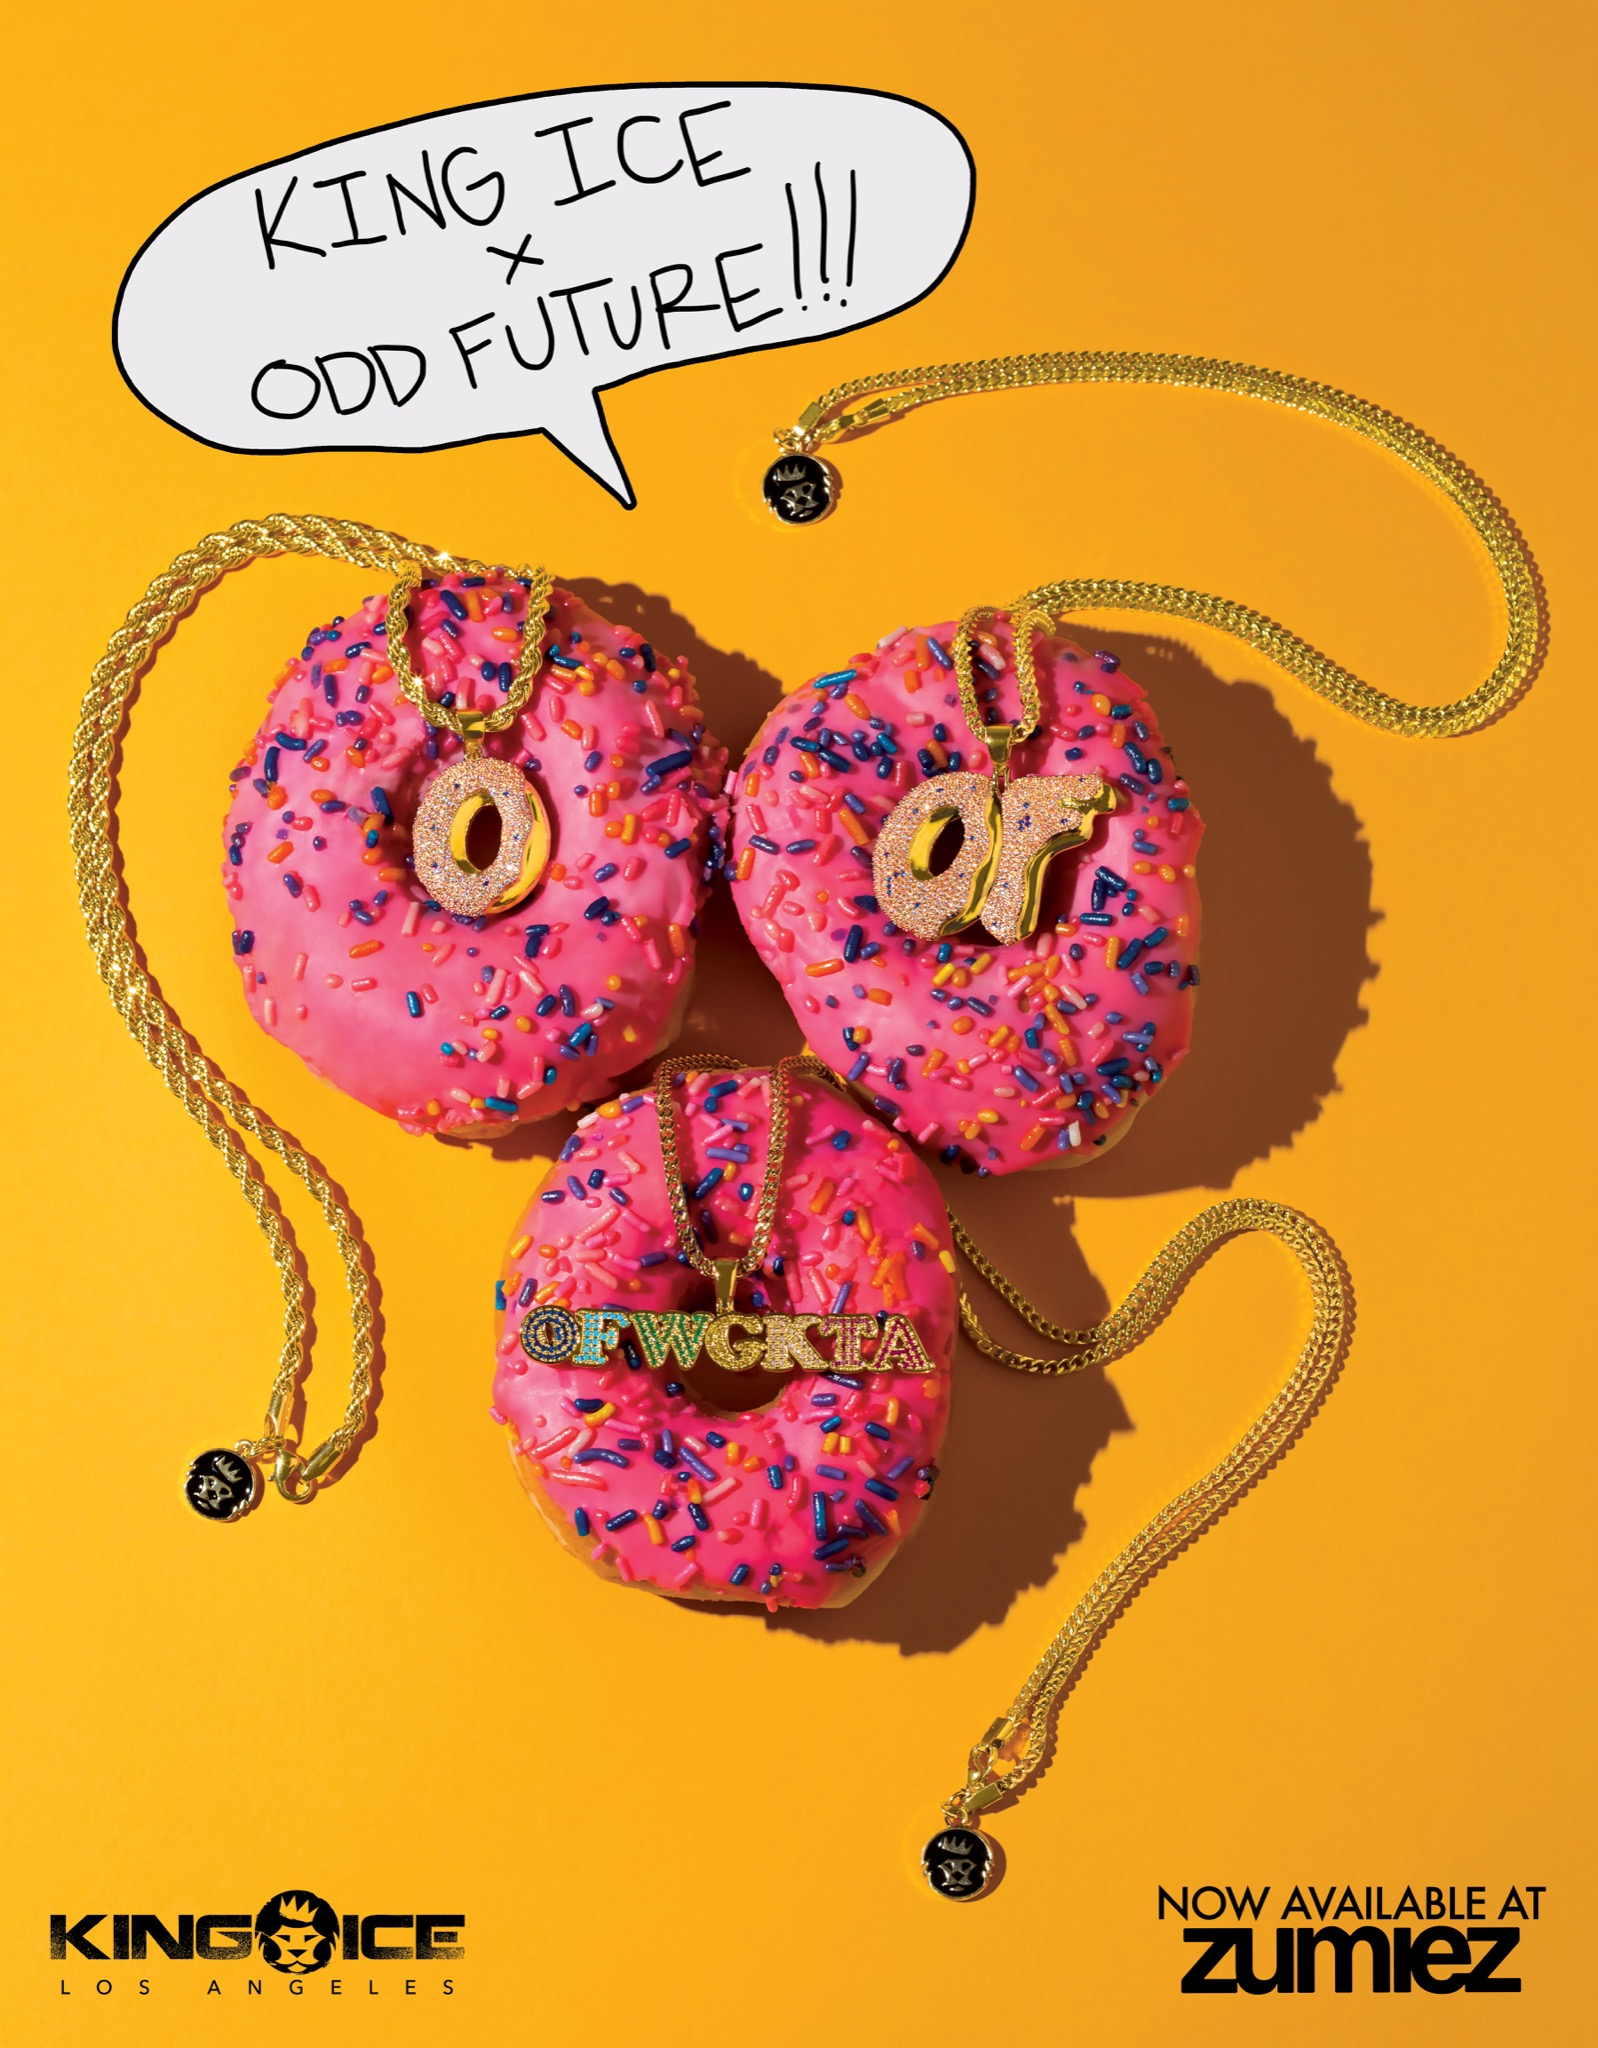 Odd Future X King Ice X Zumiez FINAL copy.jpg